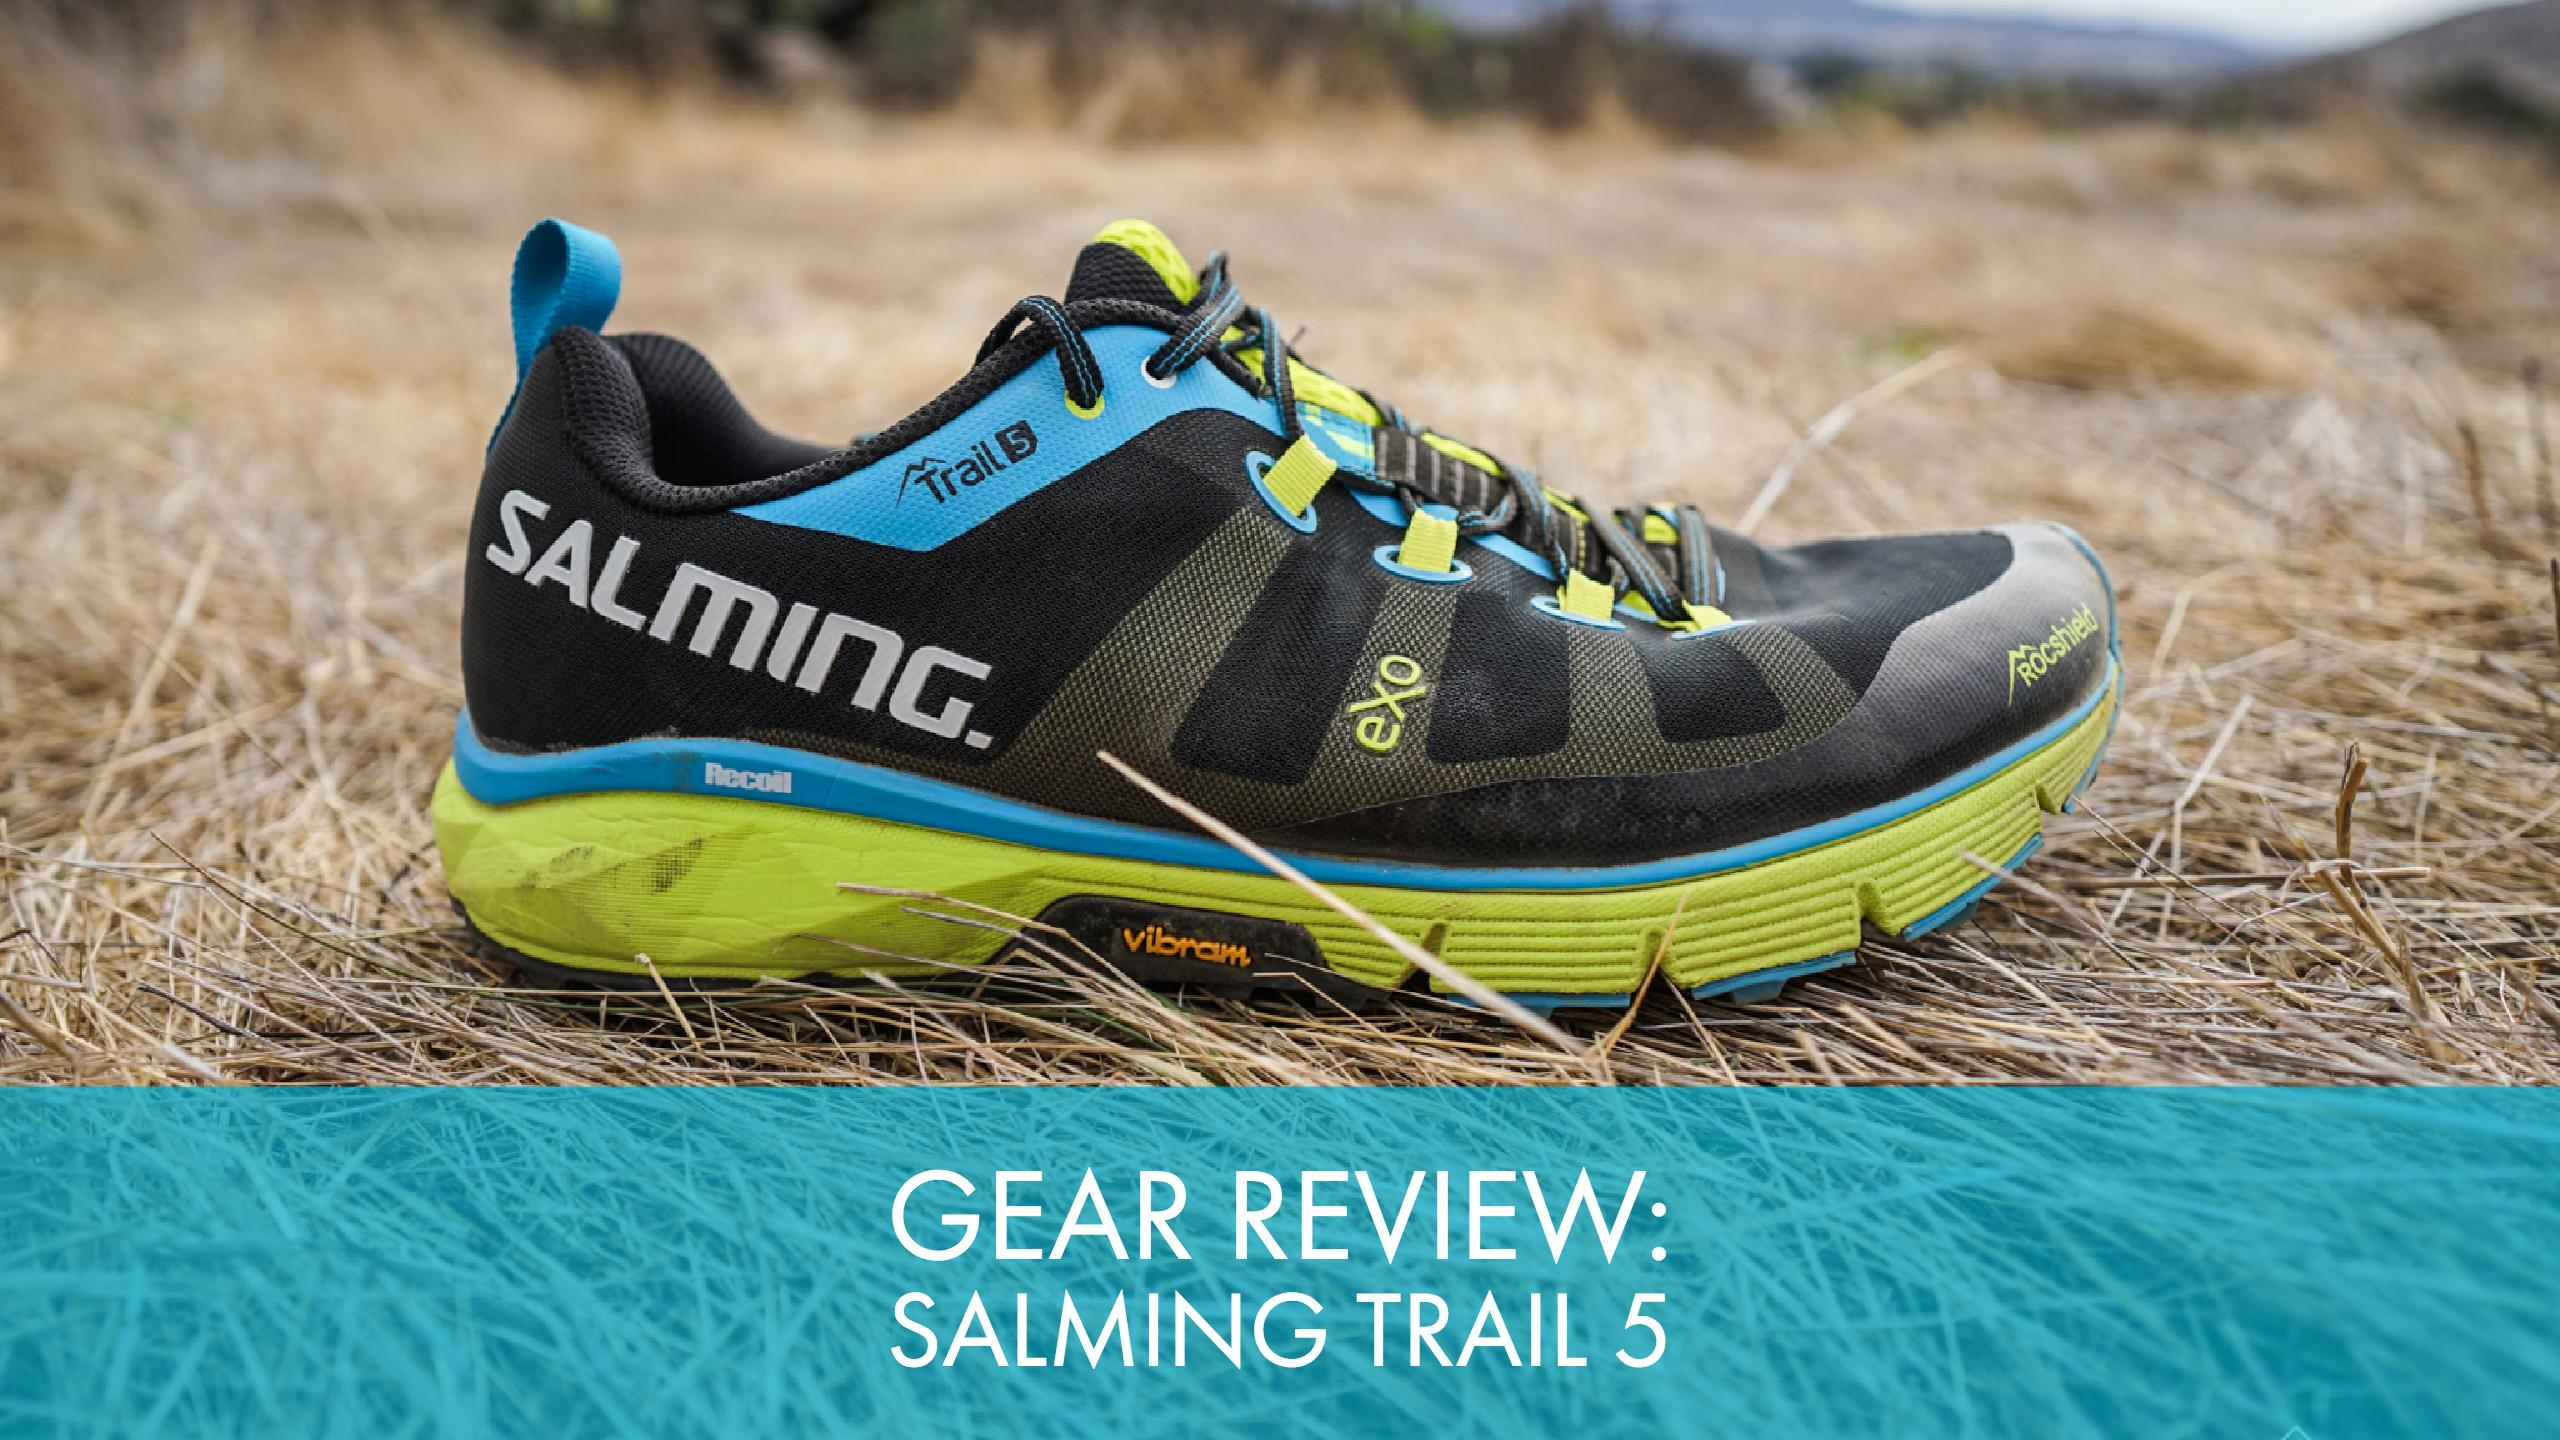 Gear Review: Salming Trail 5 - Trail to